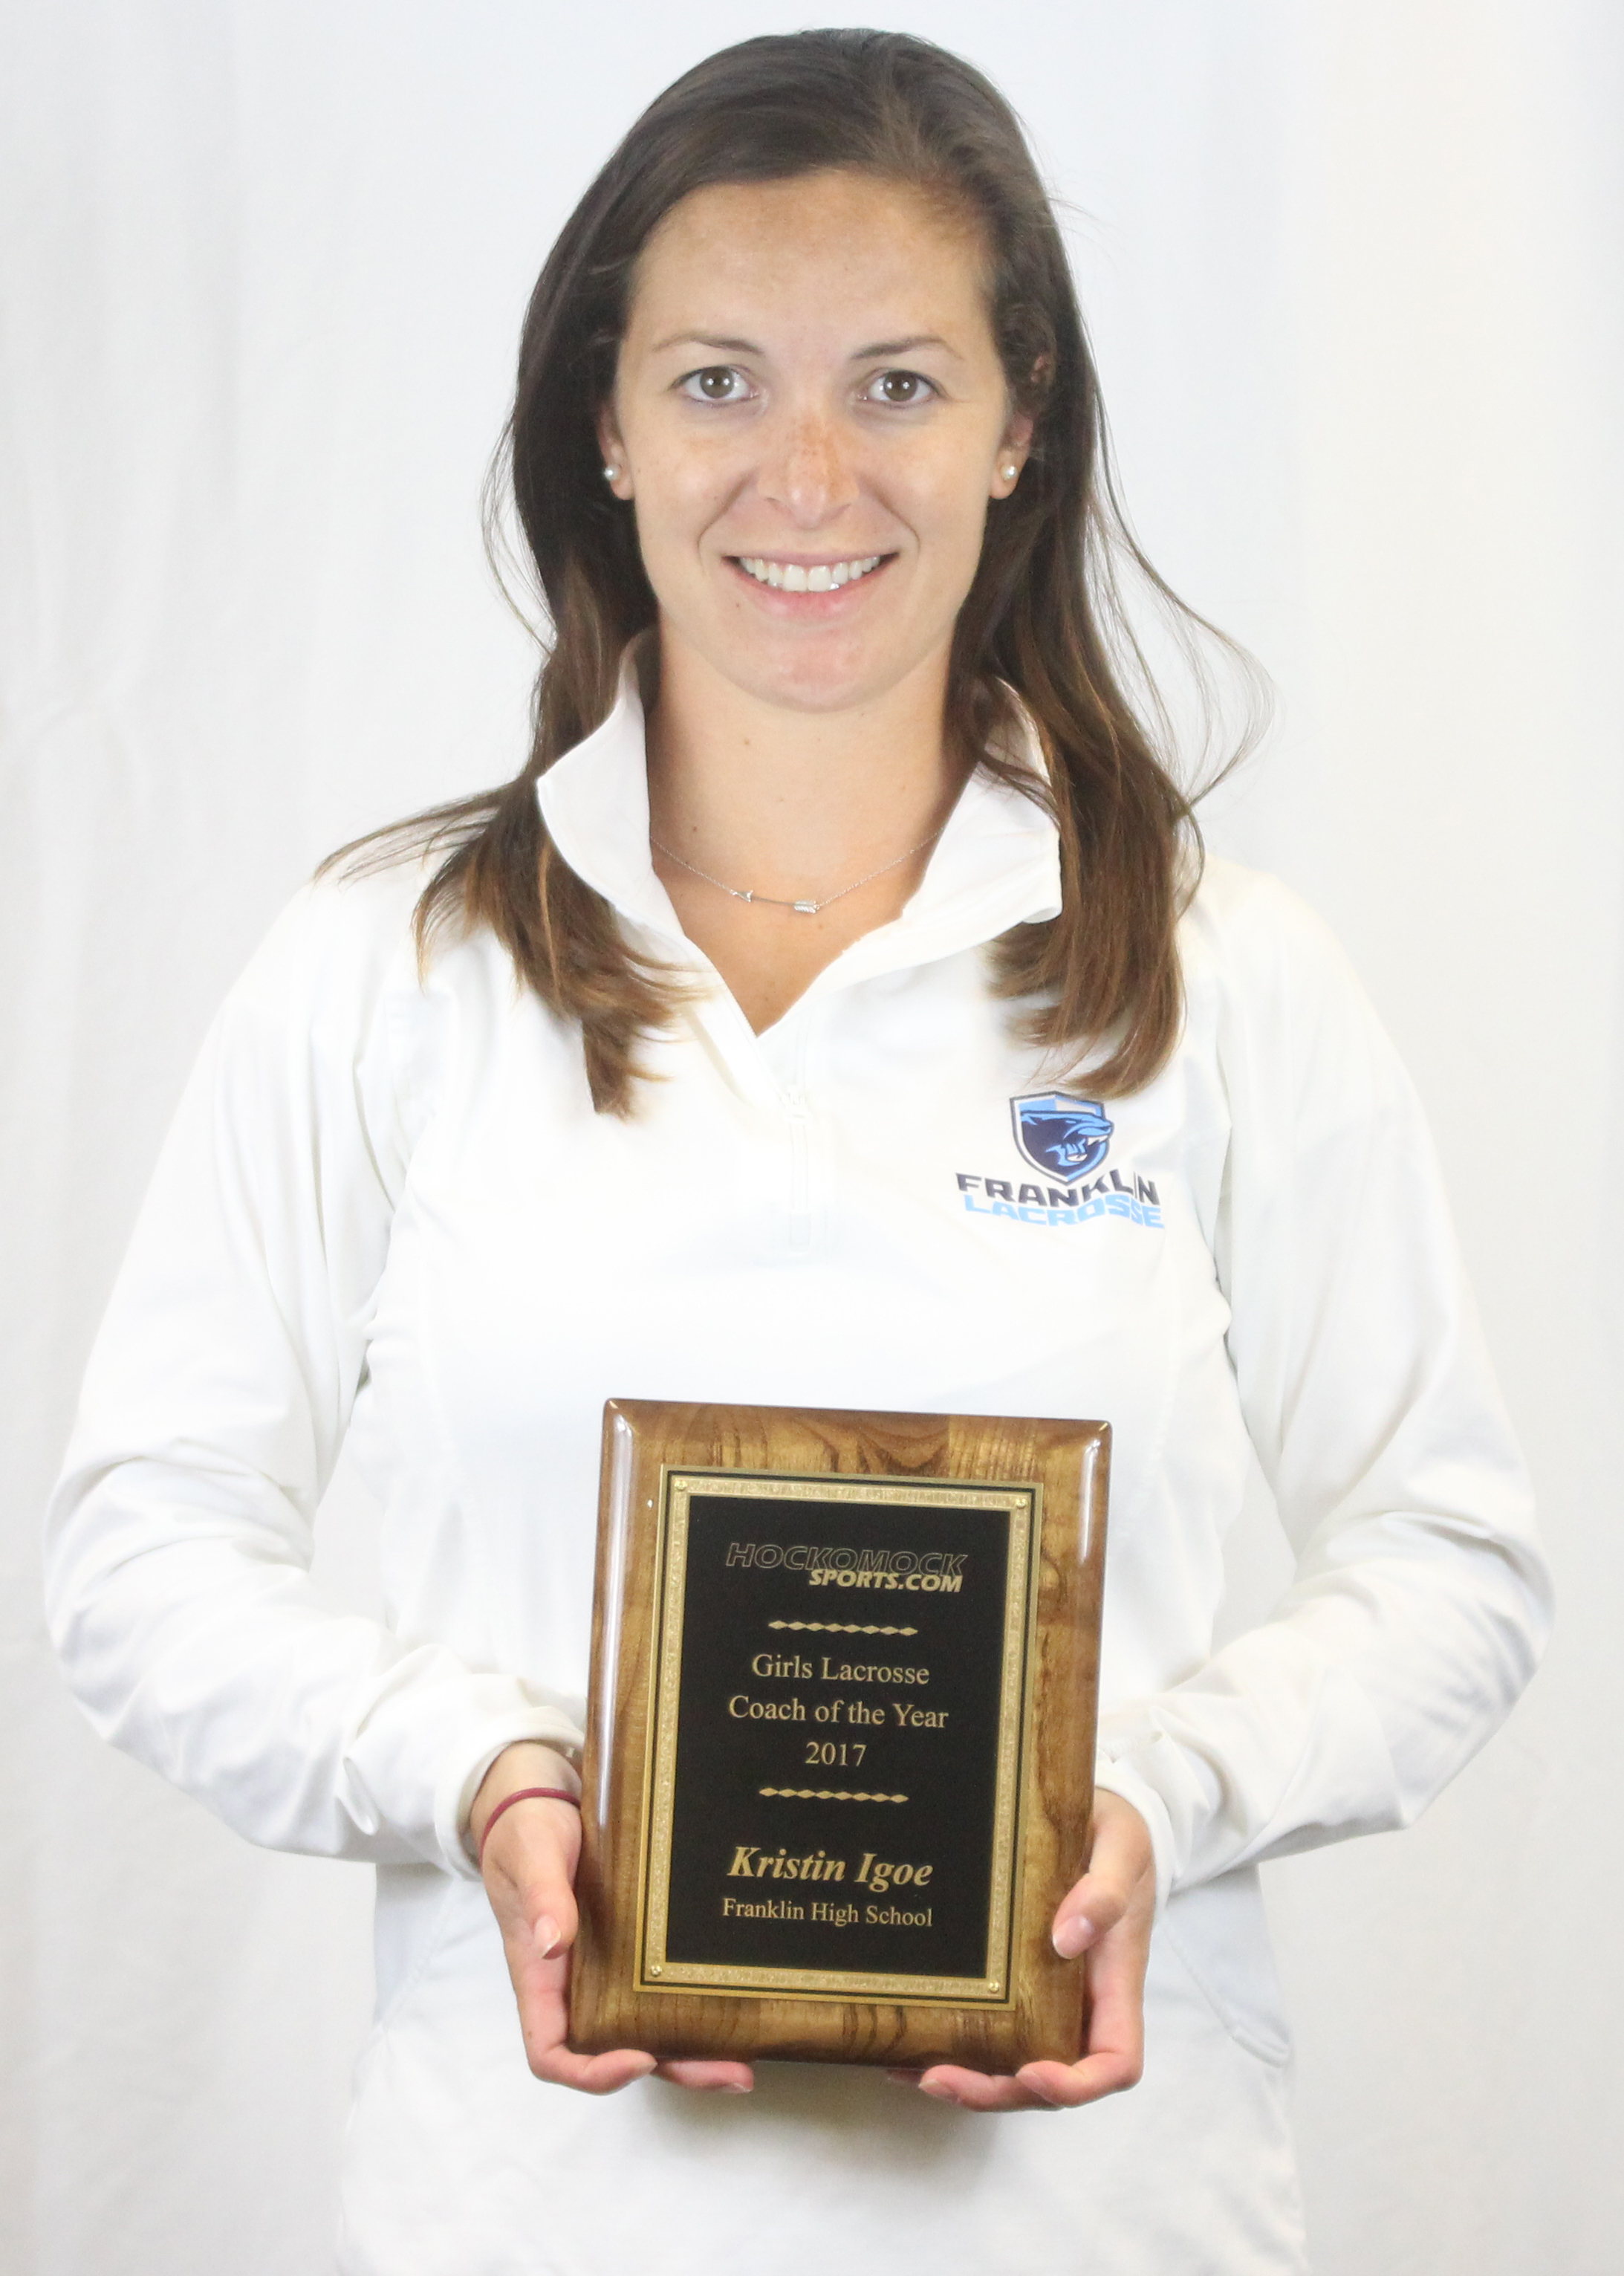 COACH OF THE YEAR – KRISTIN IGOE GUARINO, FRANKLIN